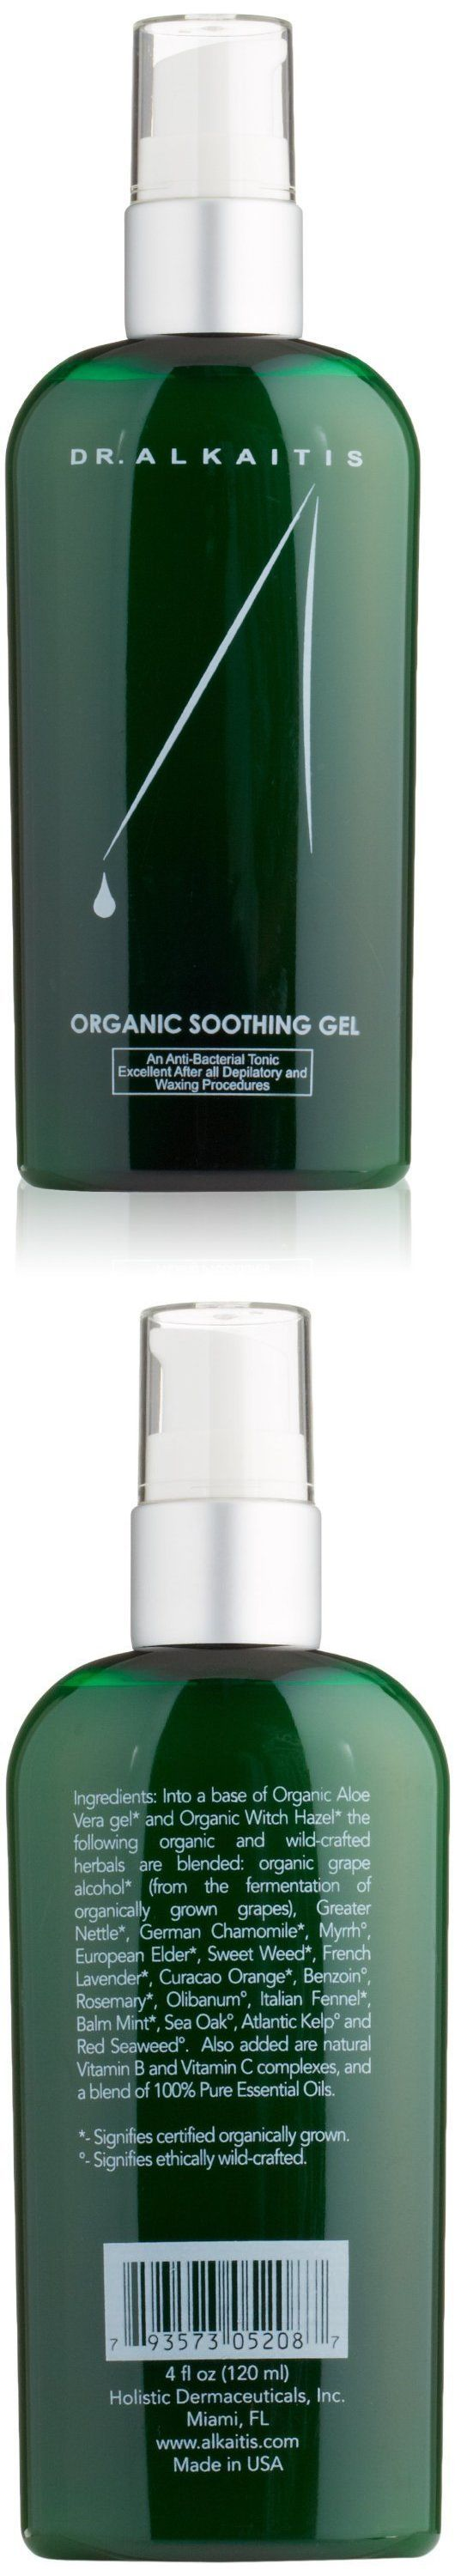 Cleansers and Toners: Dr. Alkaitis Organic Soothing Gel, 4 Fl. Oz. BUY IT NOW ONLY: $48.5